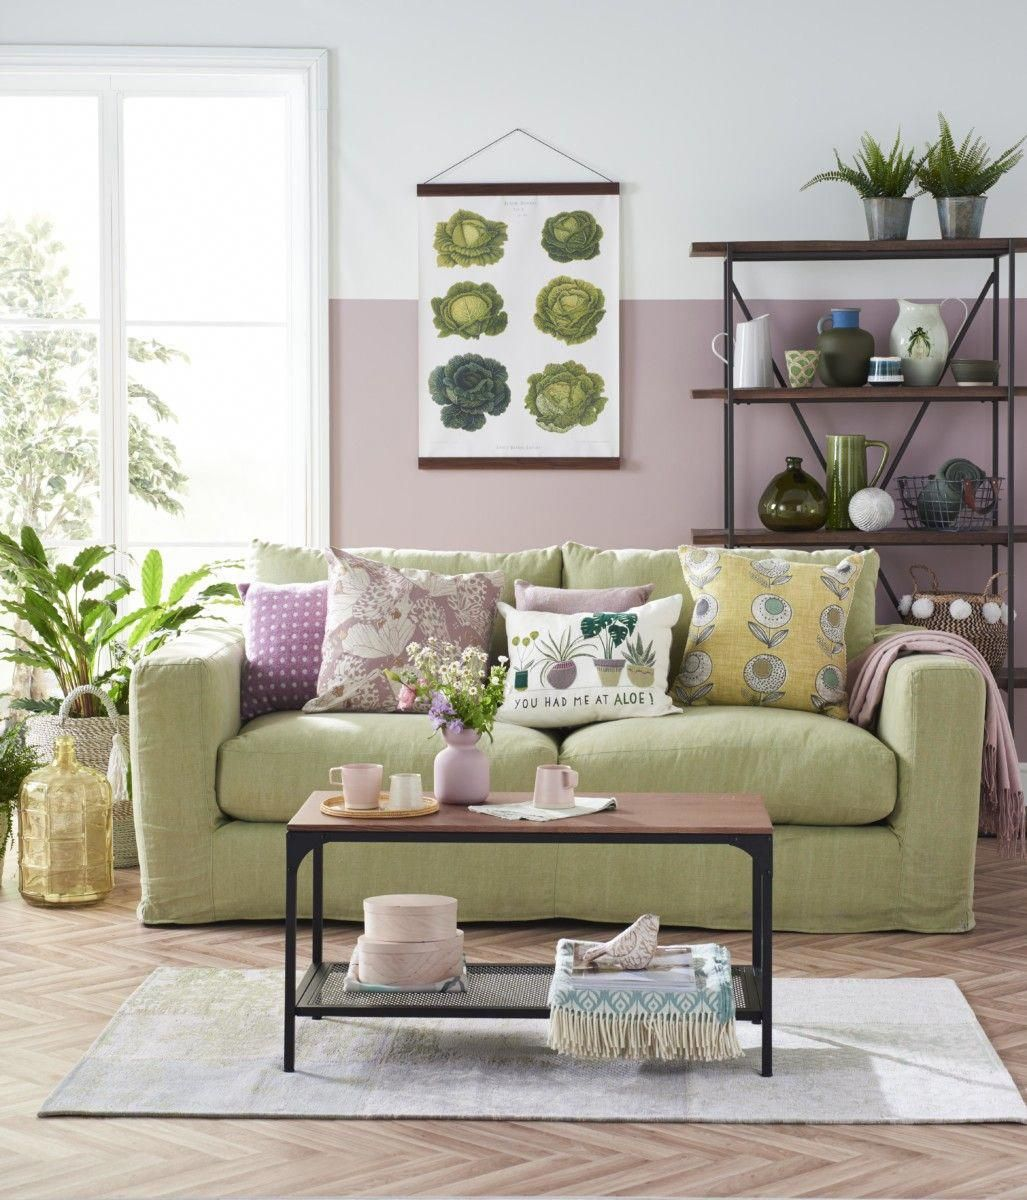 Embrace biggest spring summer interior trend for botanical prints mixed together rustic woods lavender and green tones as seen in good homes also styling with magazine design rh pinterest